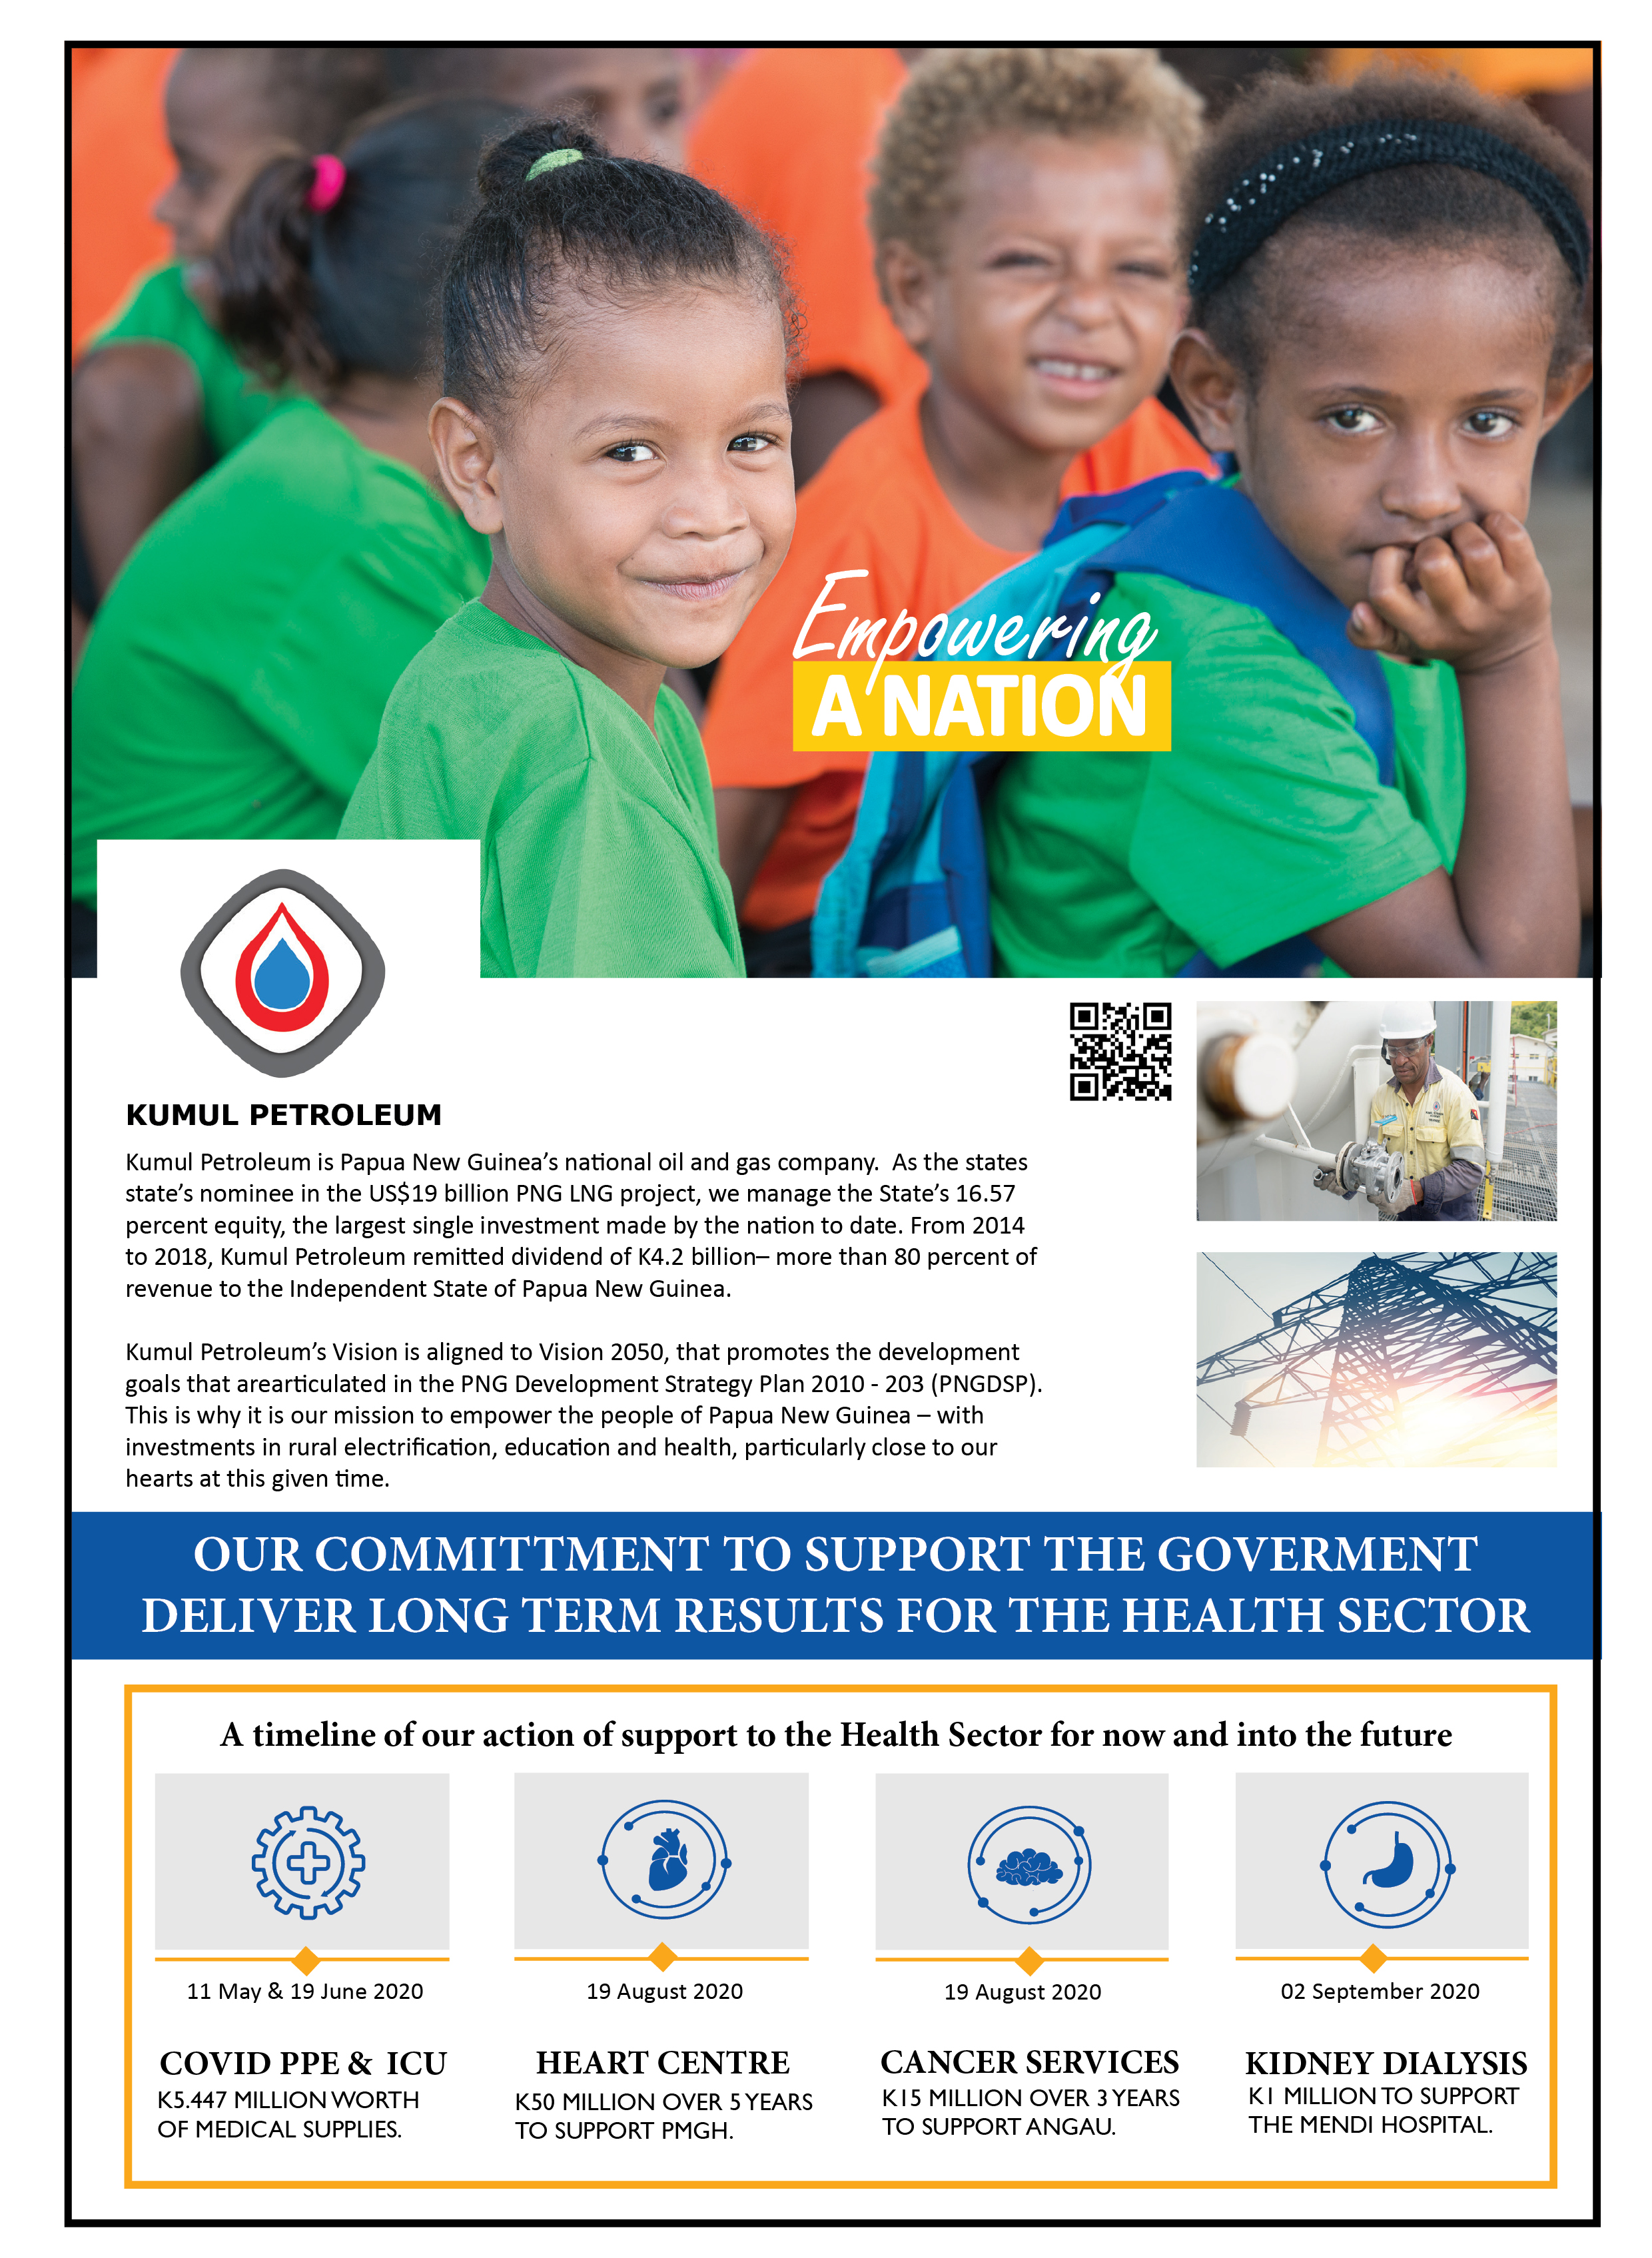 PNG Annual Industry Overview 2021 – Page 13